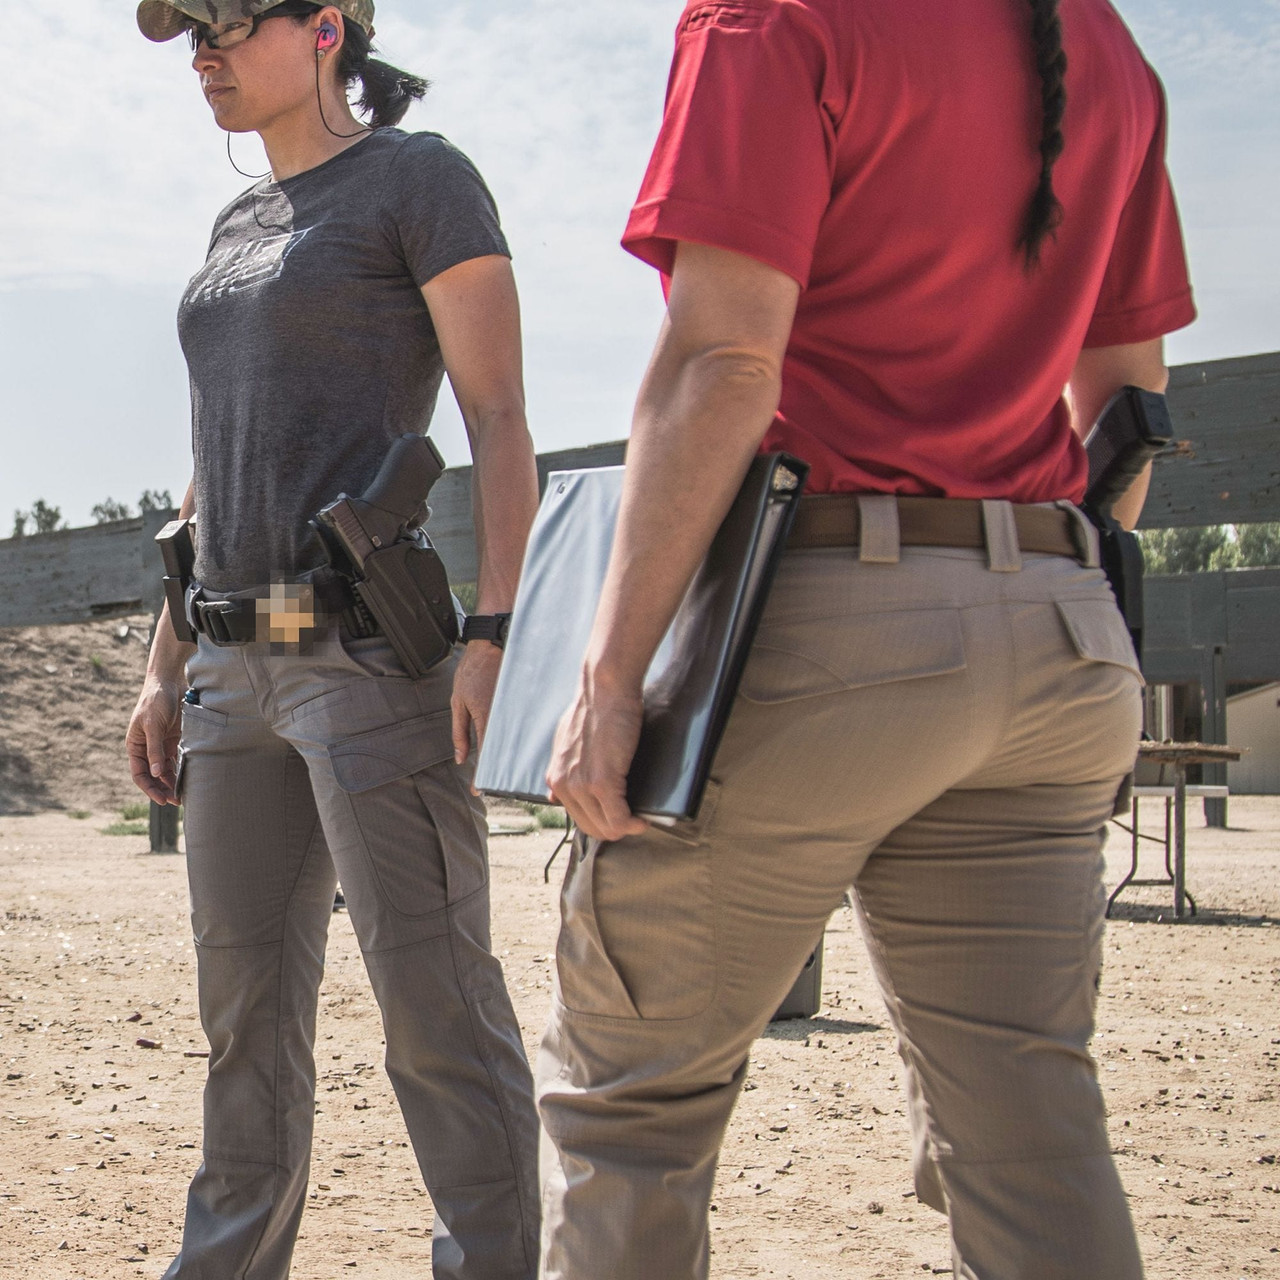 5.11 Tactical 64386 Women's Stryke Cargo Pants, Knee Pad Pockets, available in Black, Khaki, Storm, Burnt, TDU Green, Tundra, or Dark Navy